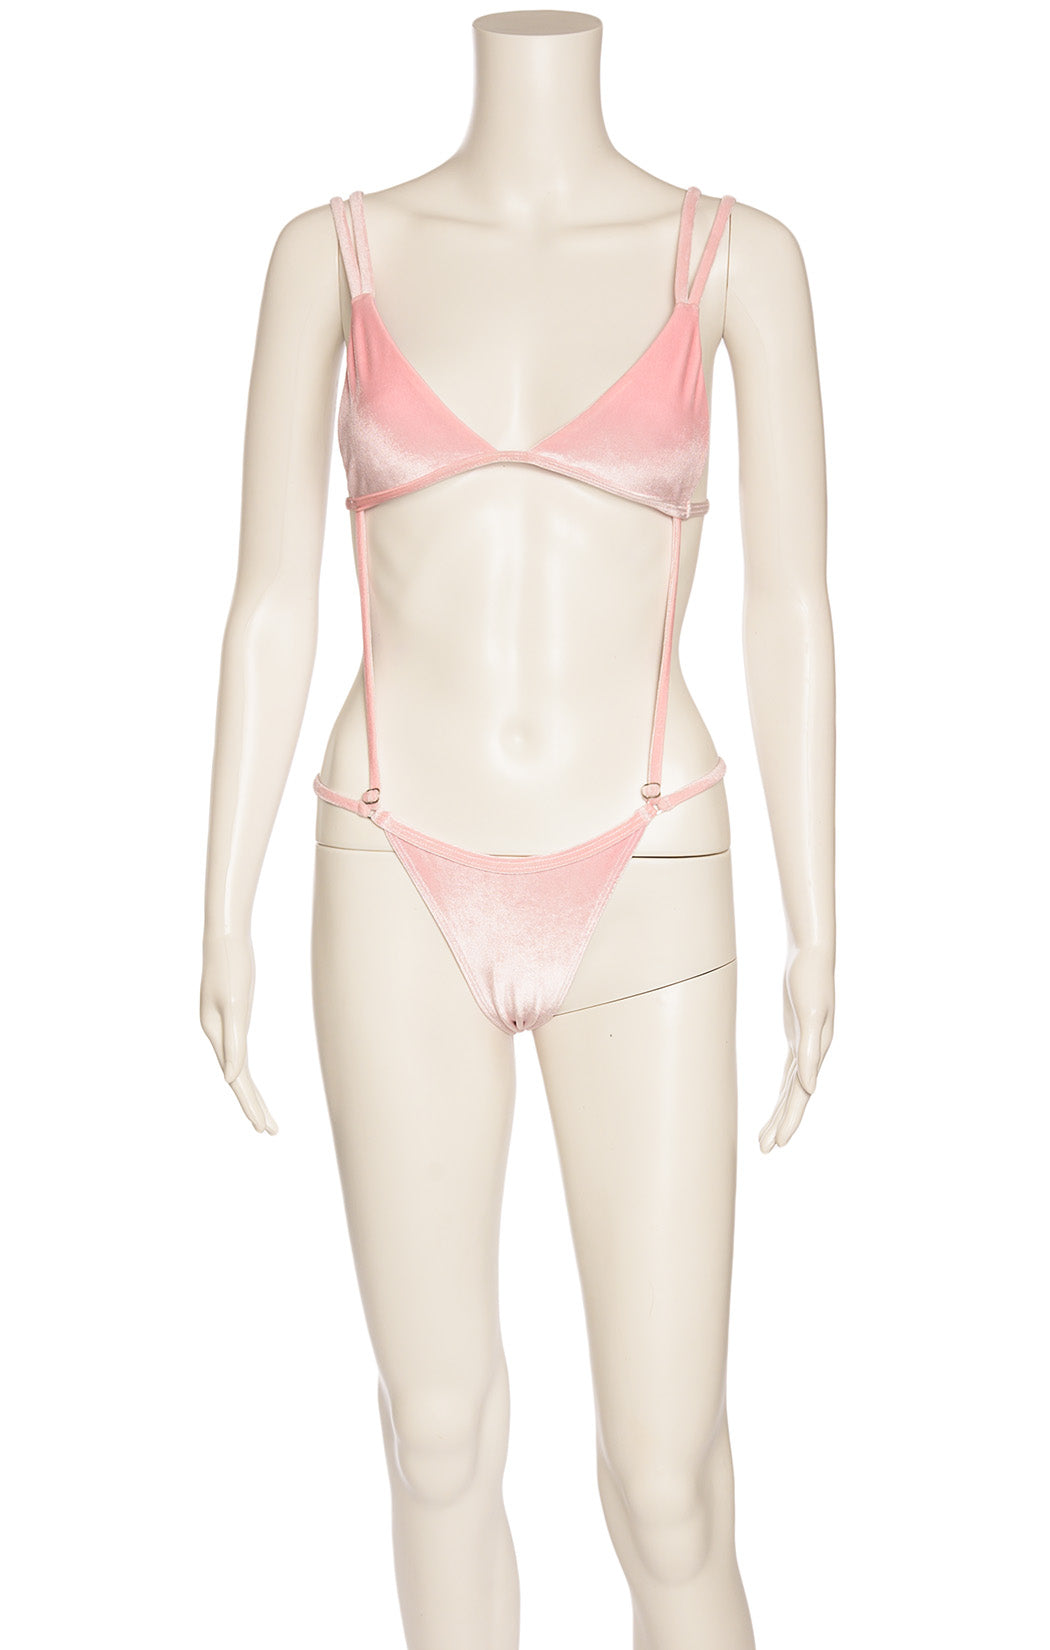 Pink velvet like fabric bikini with attached straps